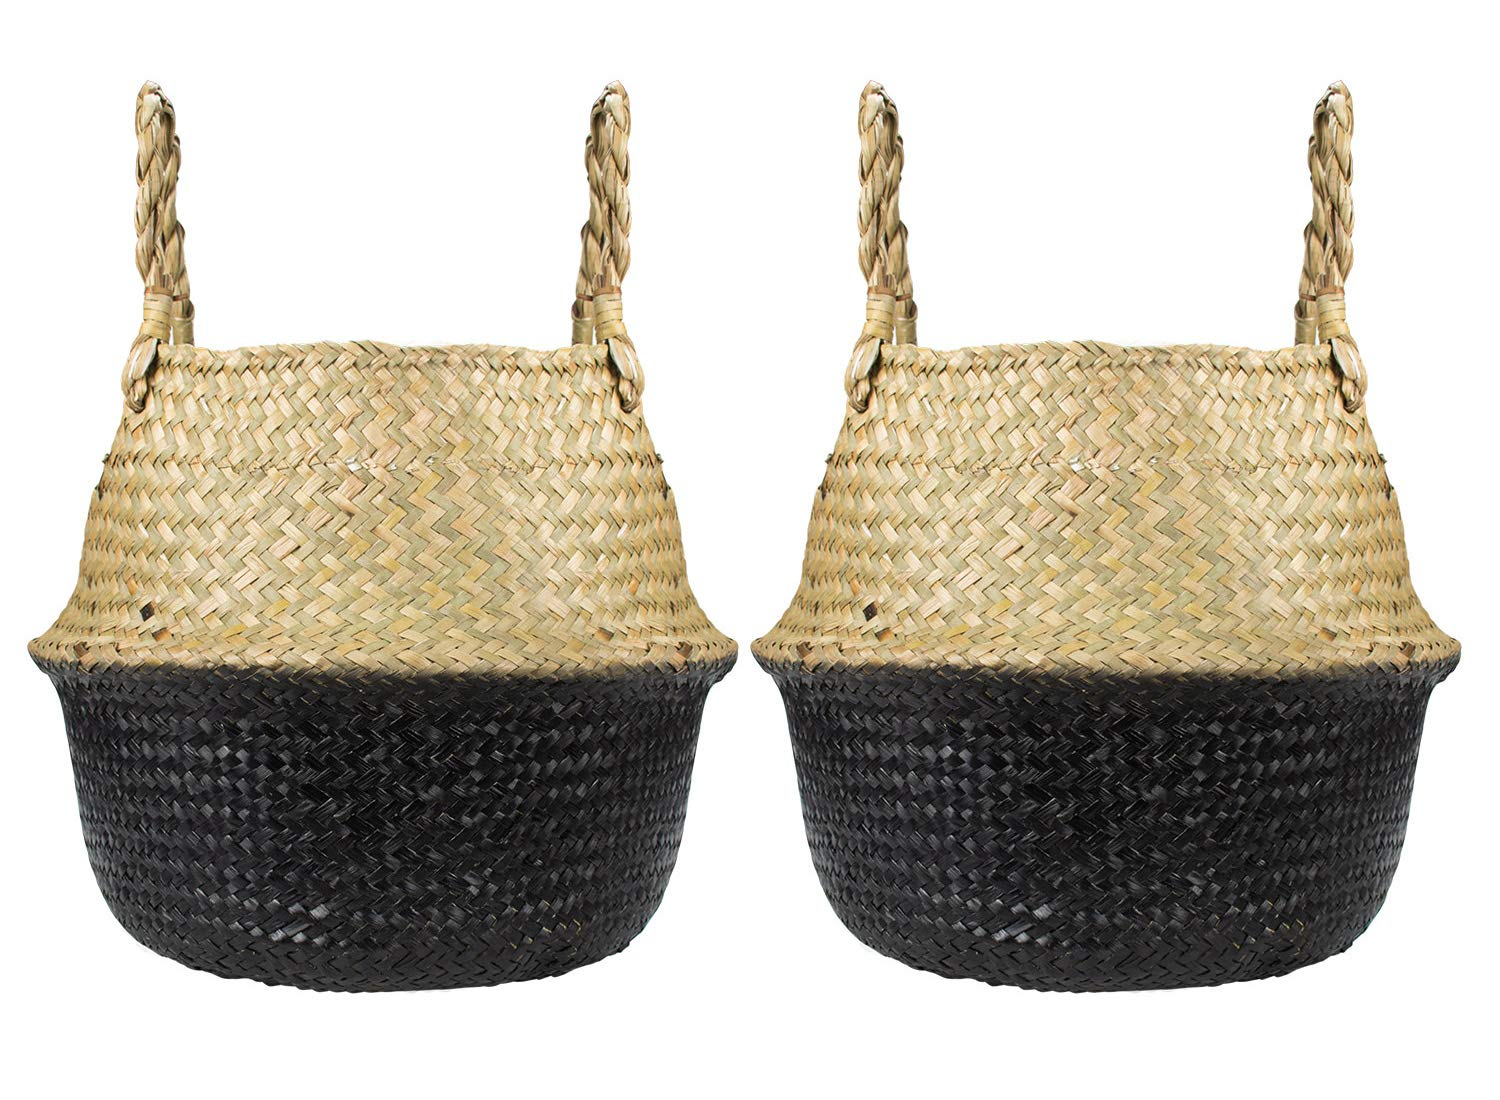 Yesland 2 Pack Seagrass Belly Basket, Black Hand Woven Plant Basket with Handles, Perfect for Storage, Laundry, Picnic, Plant Pot Cover, Toy Storage (S)